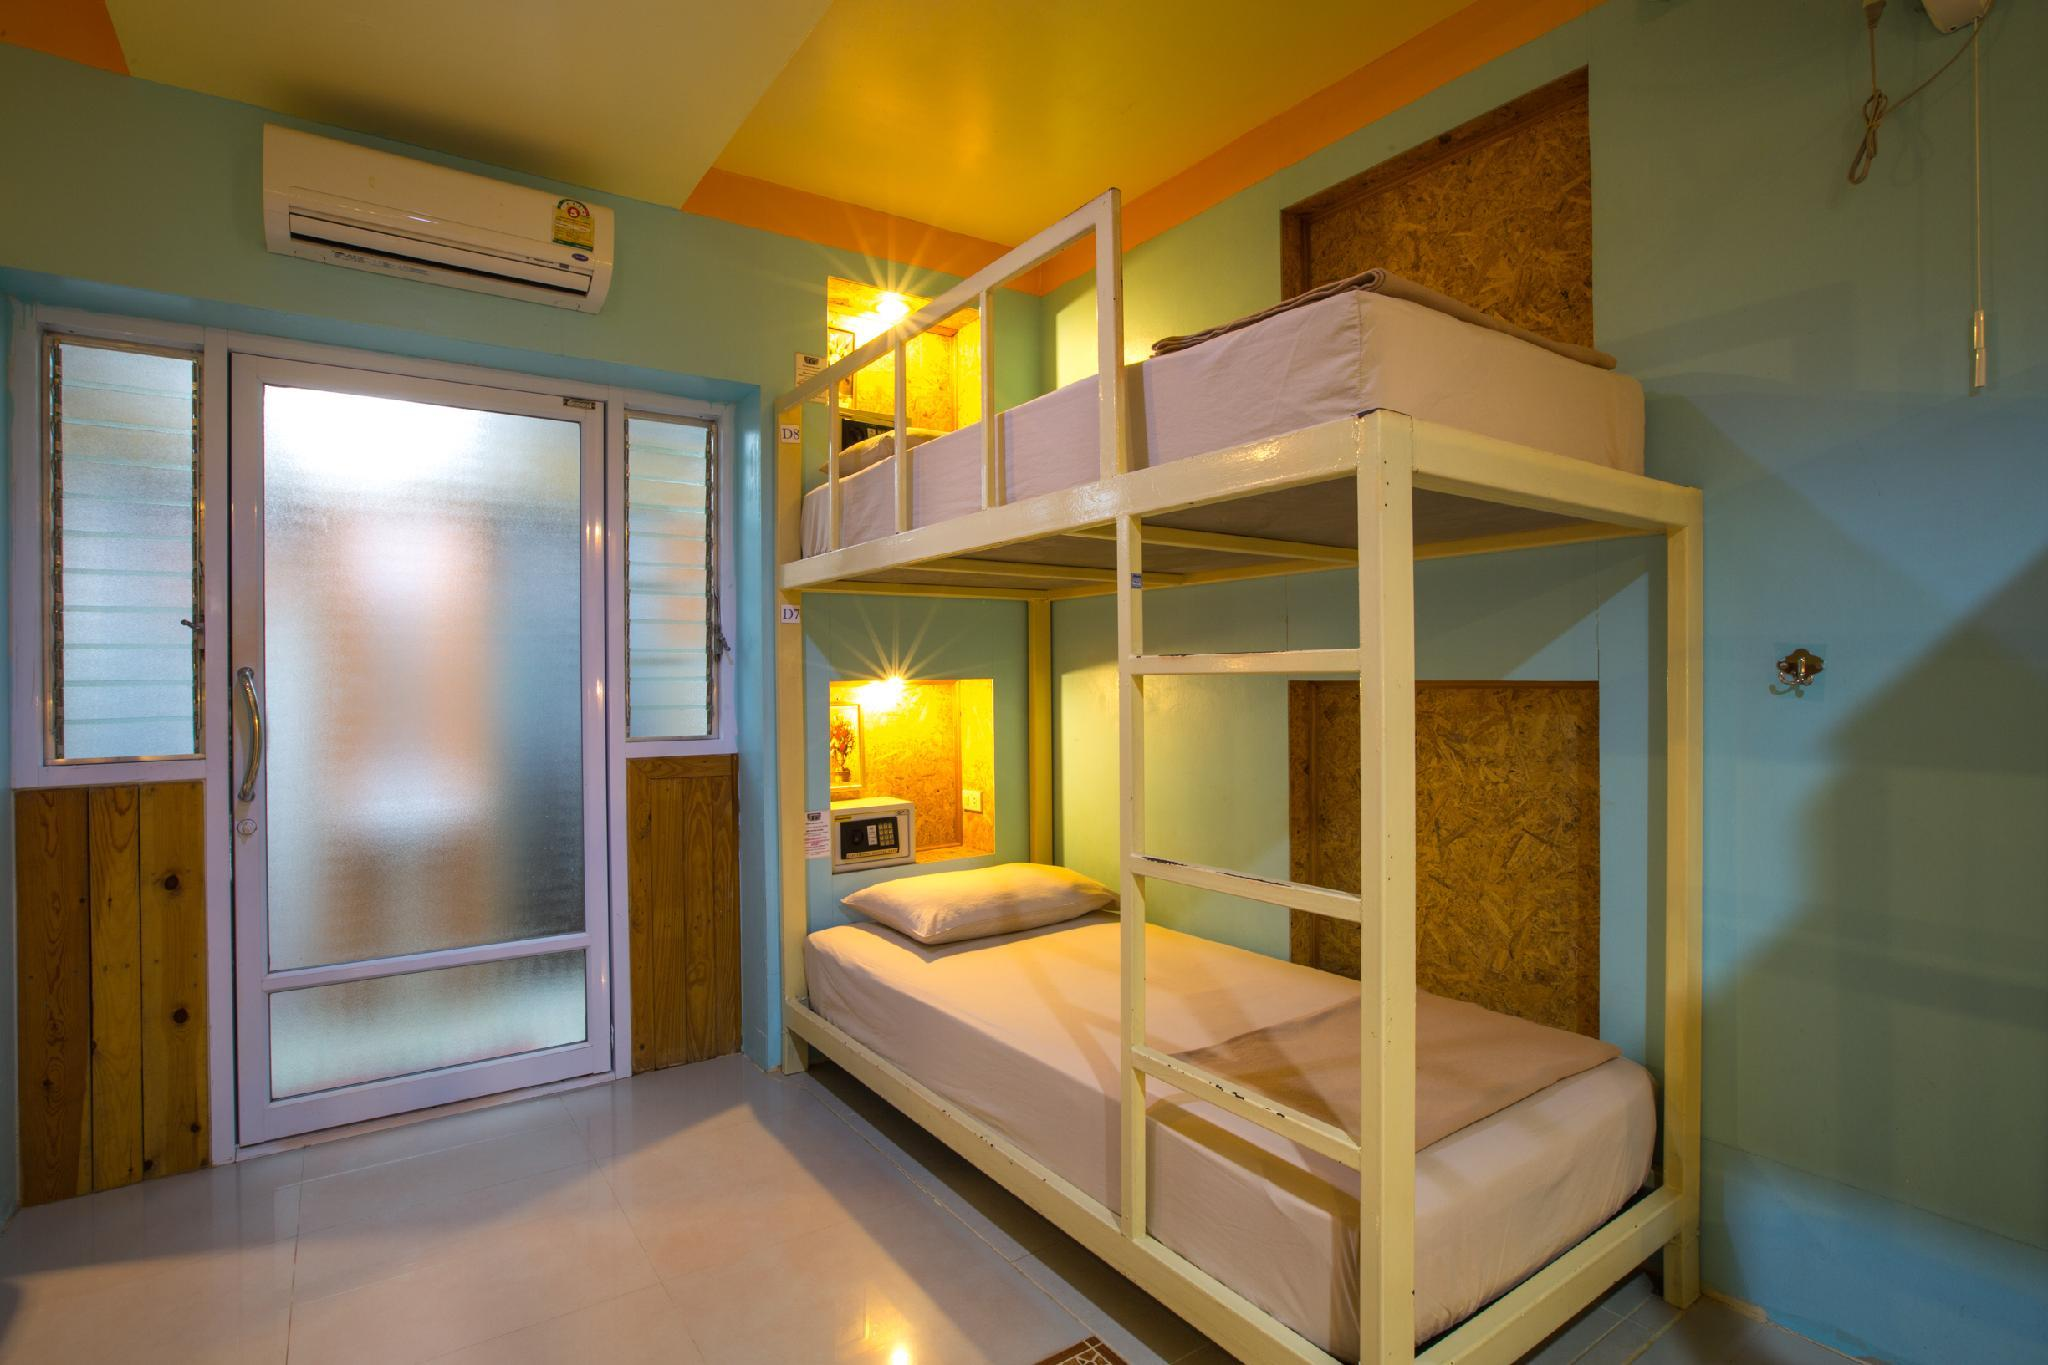 1 Person in 8-Bed Basic Dormitory - Mixed